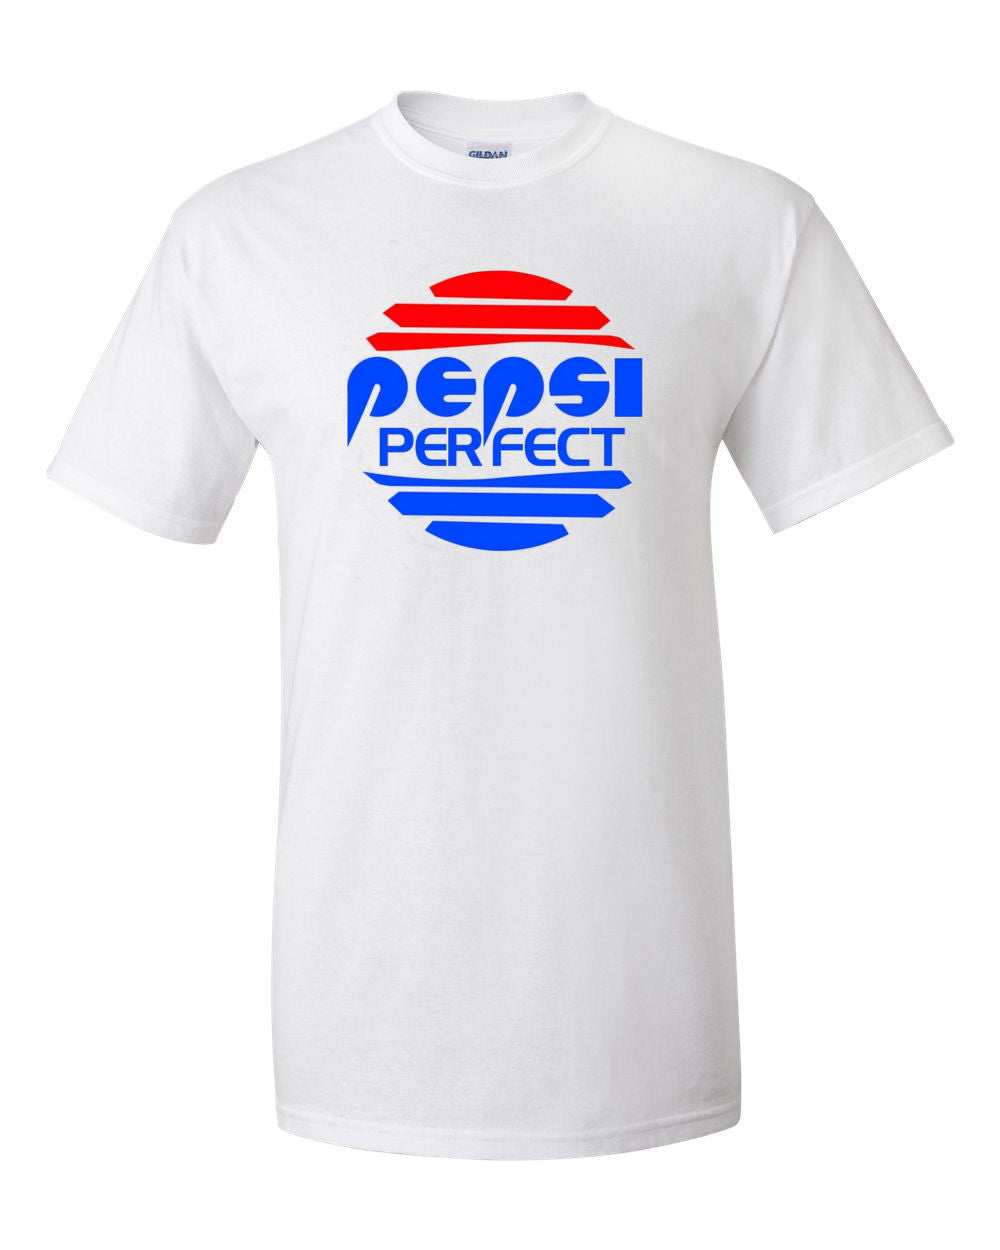 Back To The Future PEPSI PERFECT Gildan 2000 Ultra Cotton™ T-Shirt Sizes small to 5XL , Shirts - Final Score Products, Final Score Products  - 1